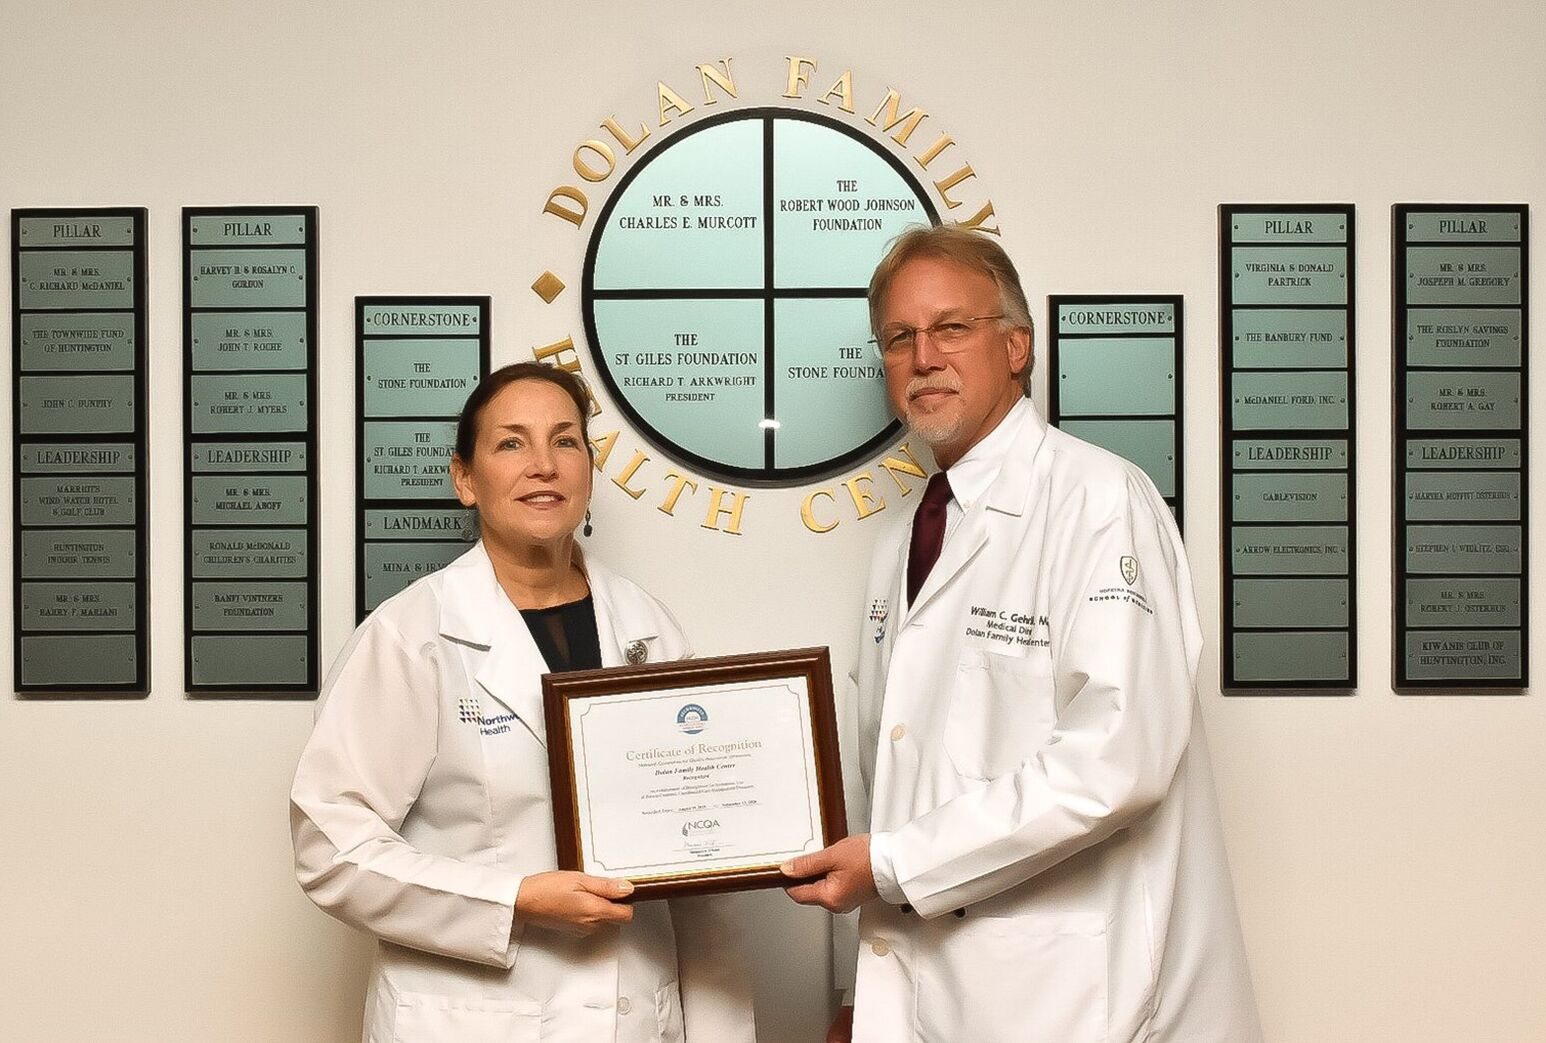 Kathy Giffuni, RN, assistant director, nursing-ambulatory and William Gehrhardt, MD, medical director, from the Dolan Family Health Center, honored to receive NCQA recognition.